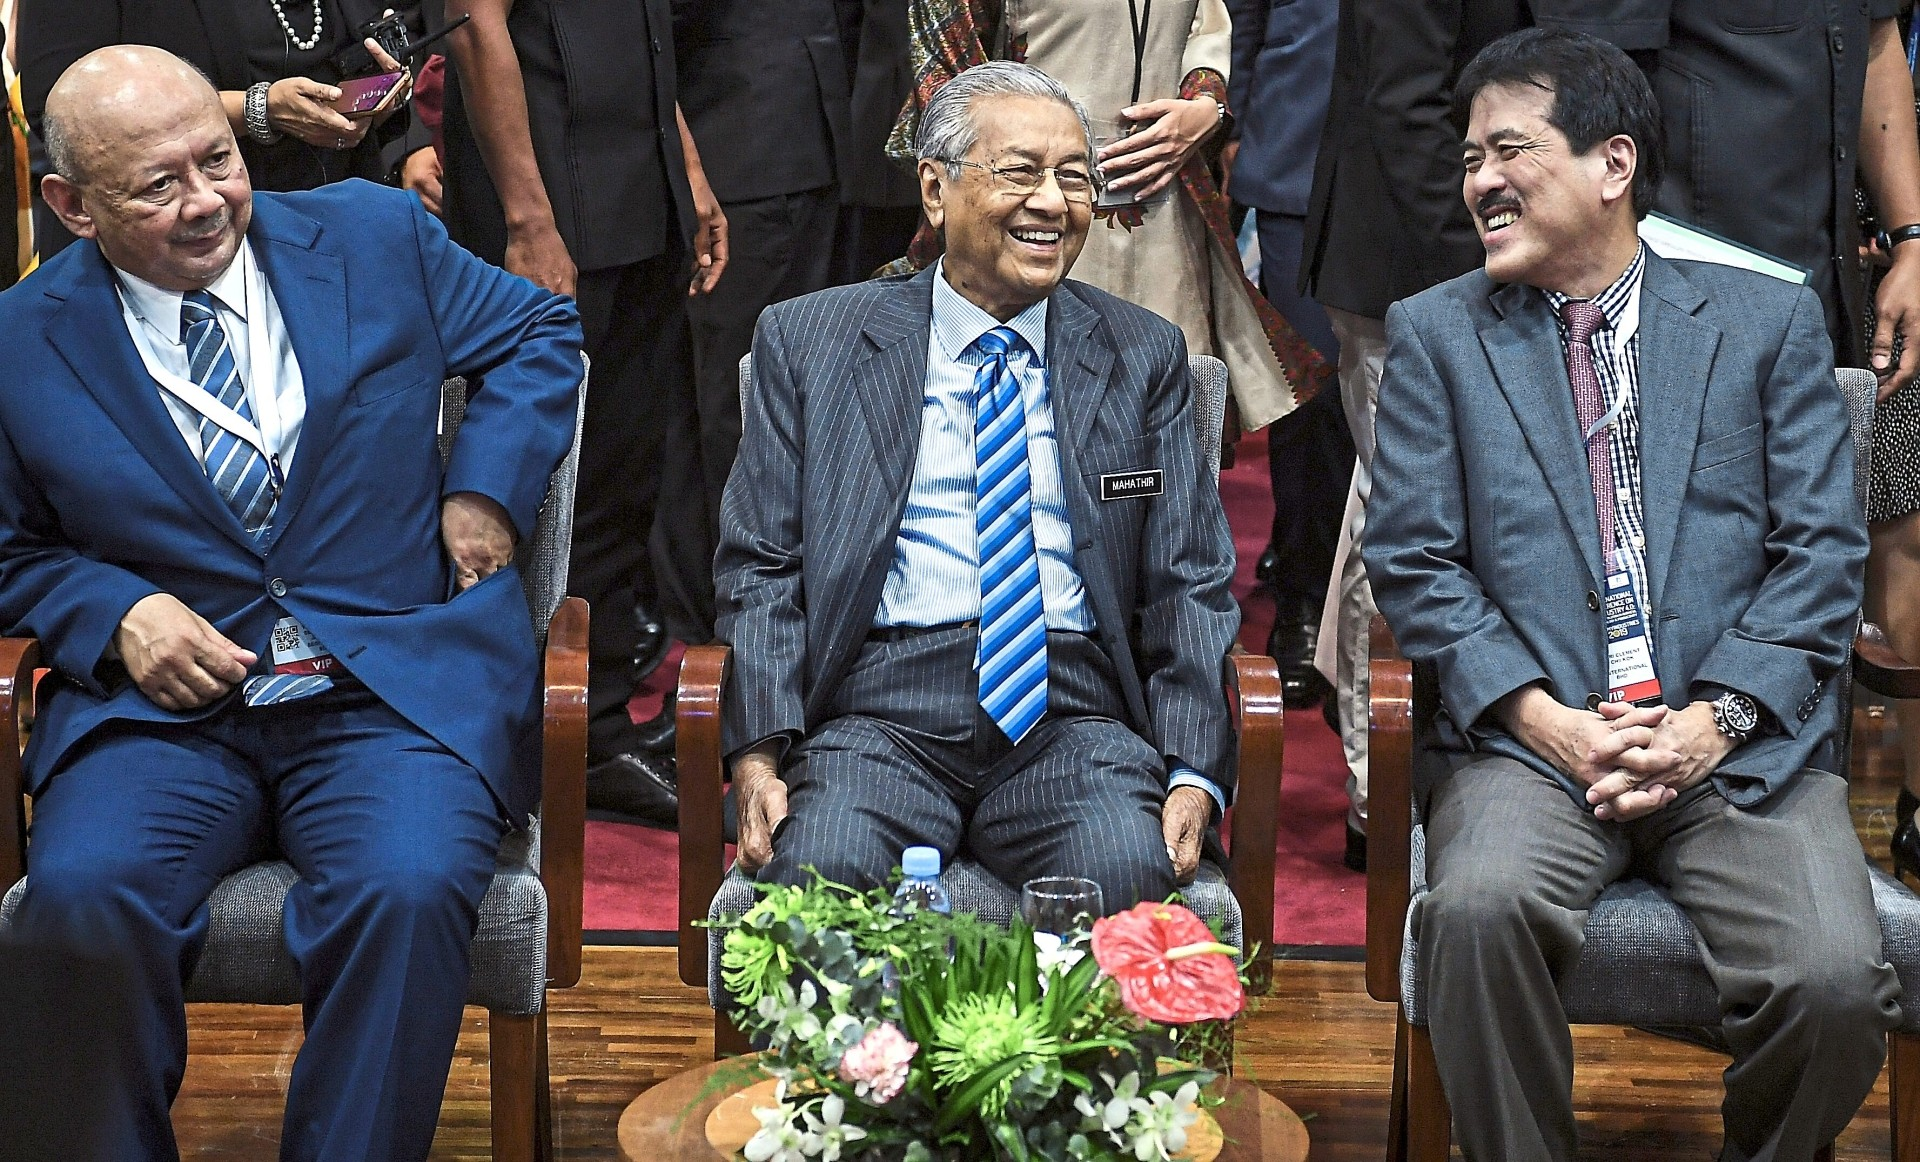 All smiles: Dr Mahathir (centre) sharing a light moment with SEGi University & Colleges group managing director Tan Sri Clement Hii Chii Kok (right) at SEGi University. Looking on is SEGi University chancellor Tan Sri Syed Anwar Jamalullail. — Bernama